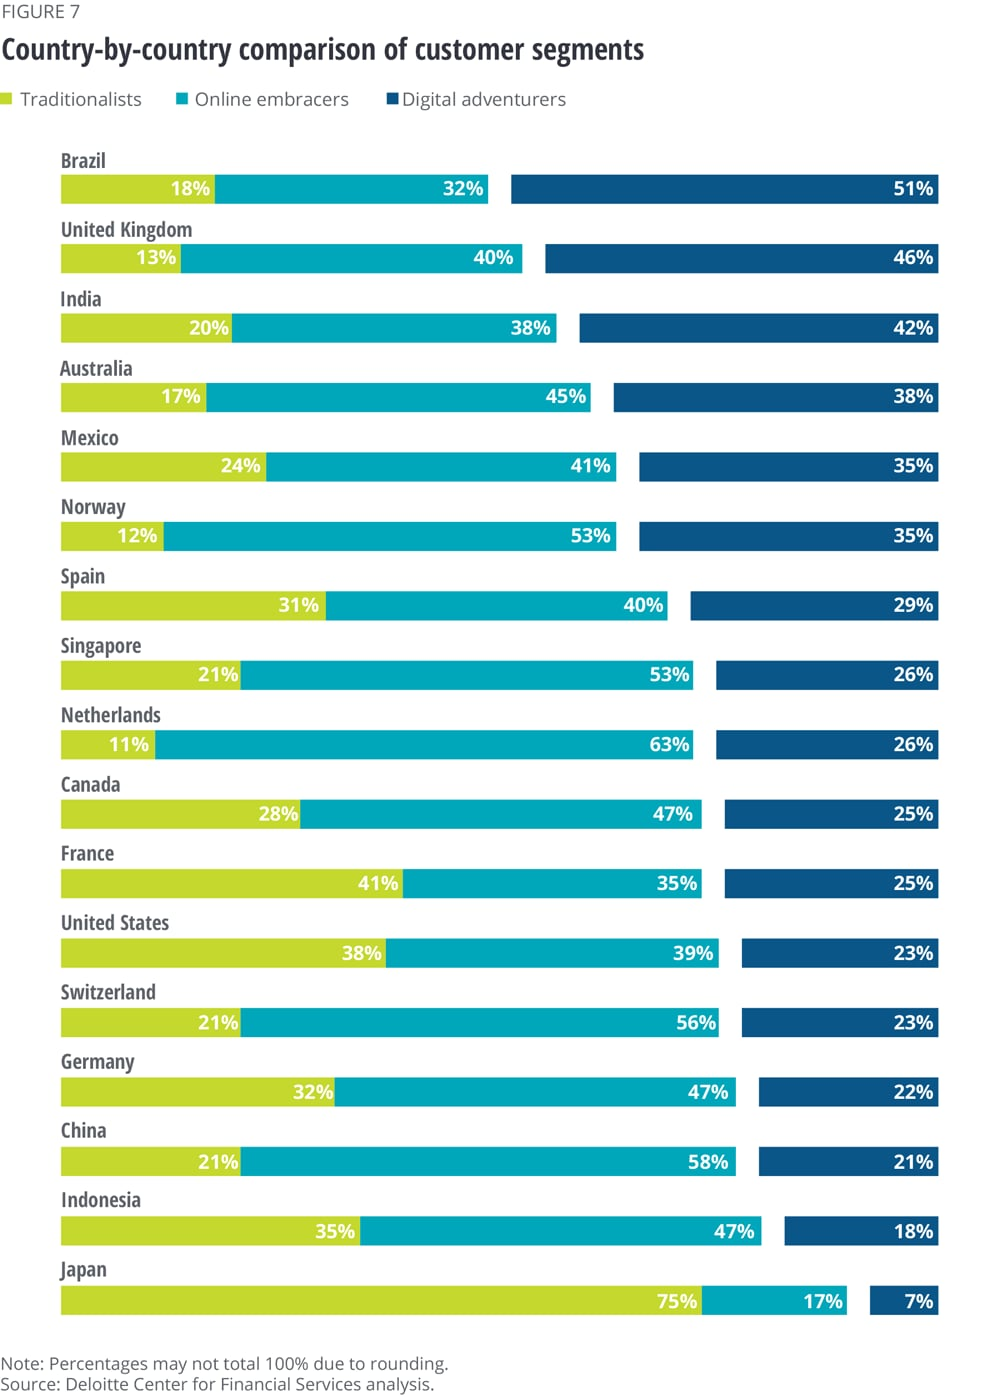 Country-by-country comparison of customer segments